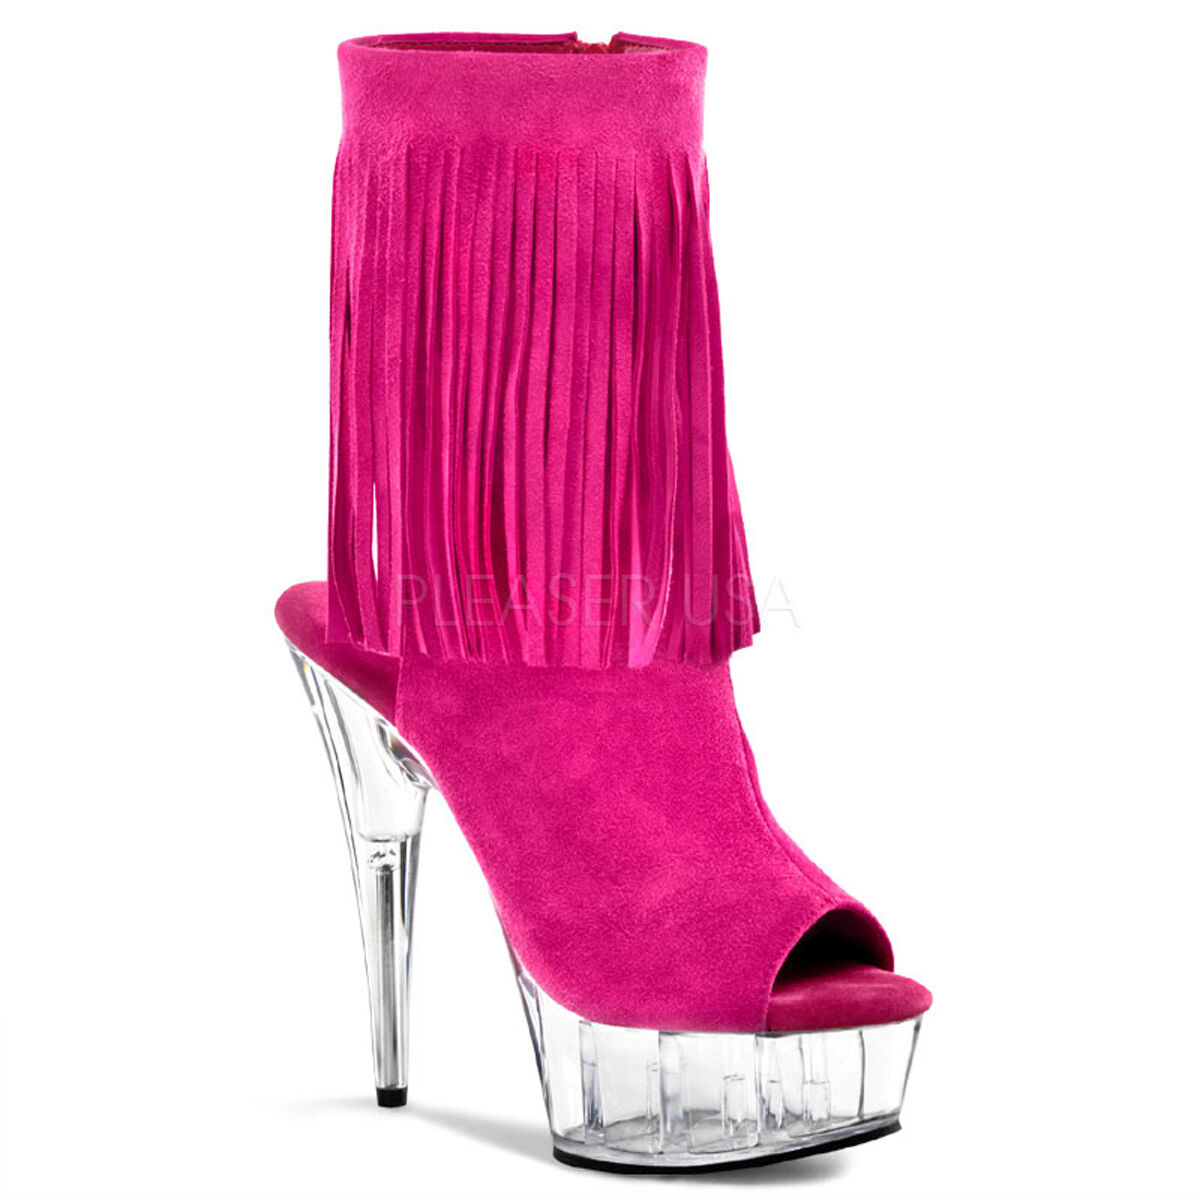 PLEASER Ankle FASCINATE Stiefel 1019 ADORE DELIGHT FASCINATE Ankle FLAMINGO ILLUSION b73a78